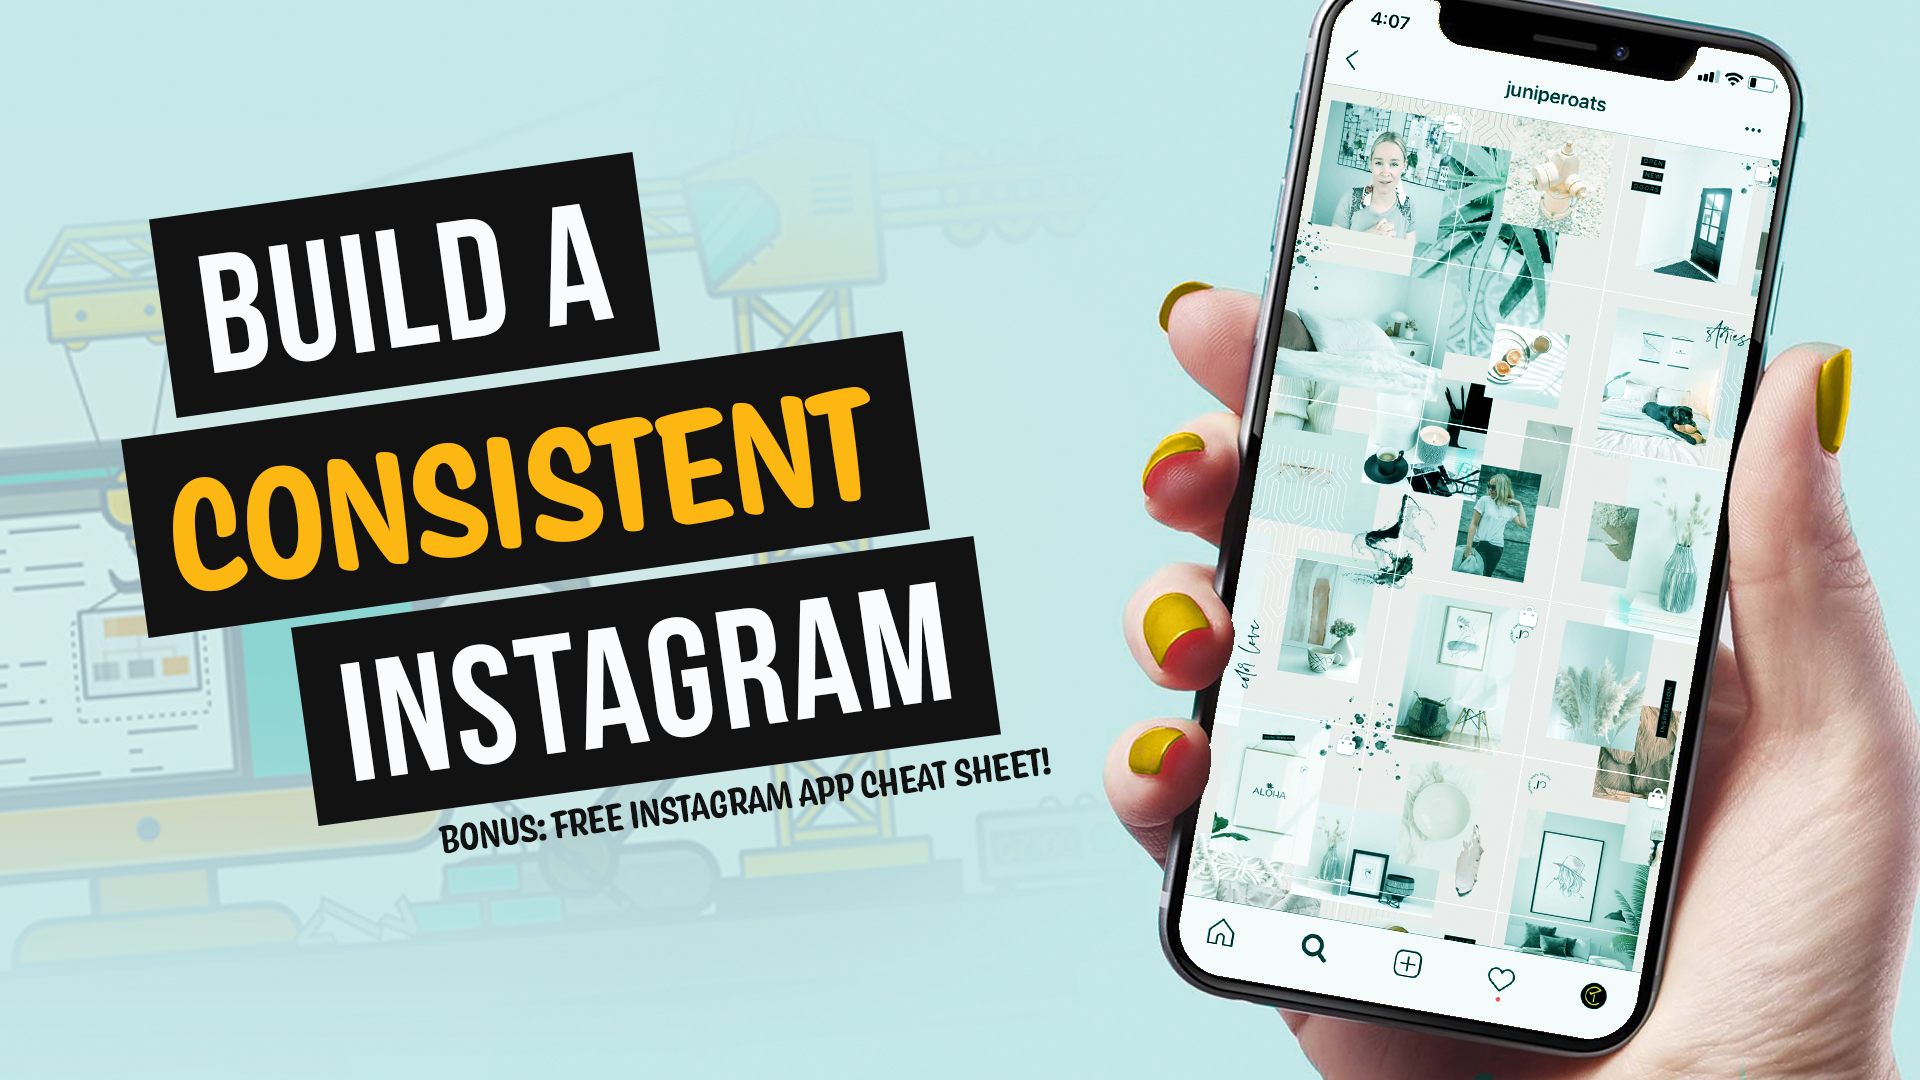 Build a Consistent Instagram